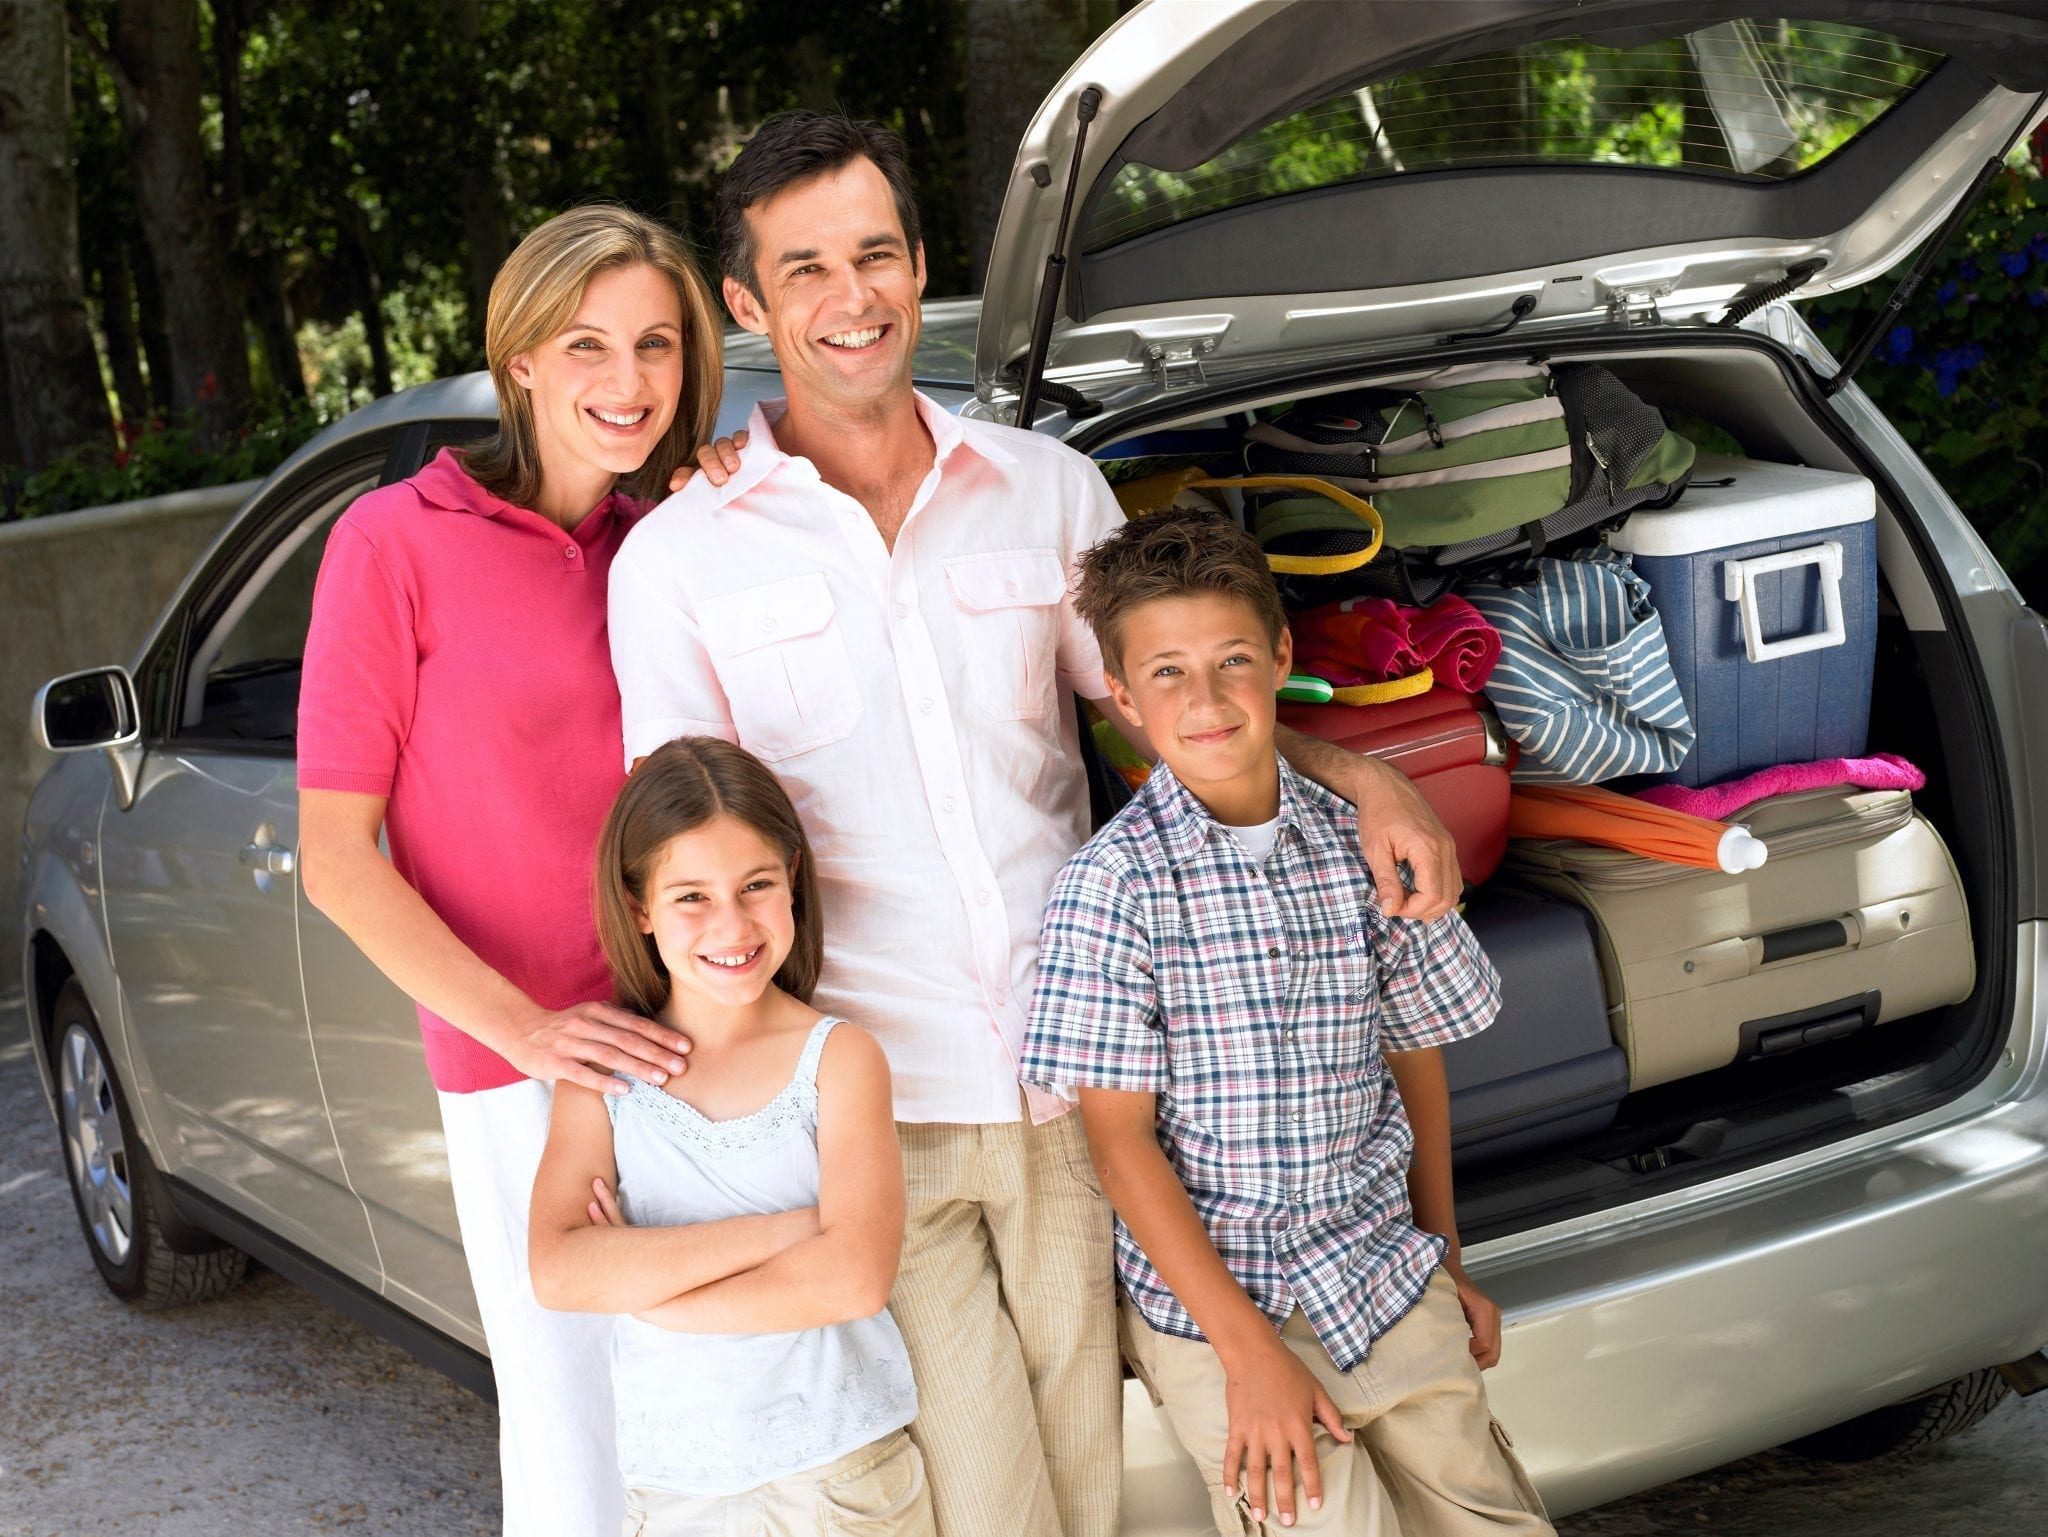 are we there yet travel tips family in front of car image